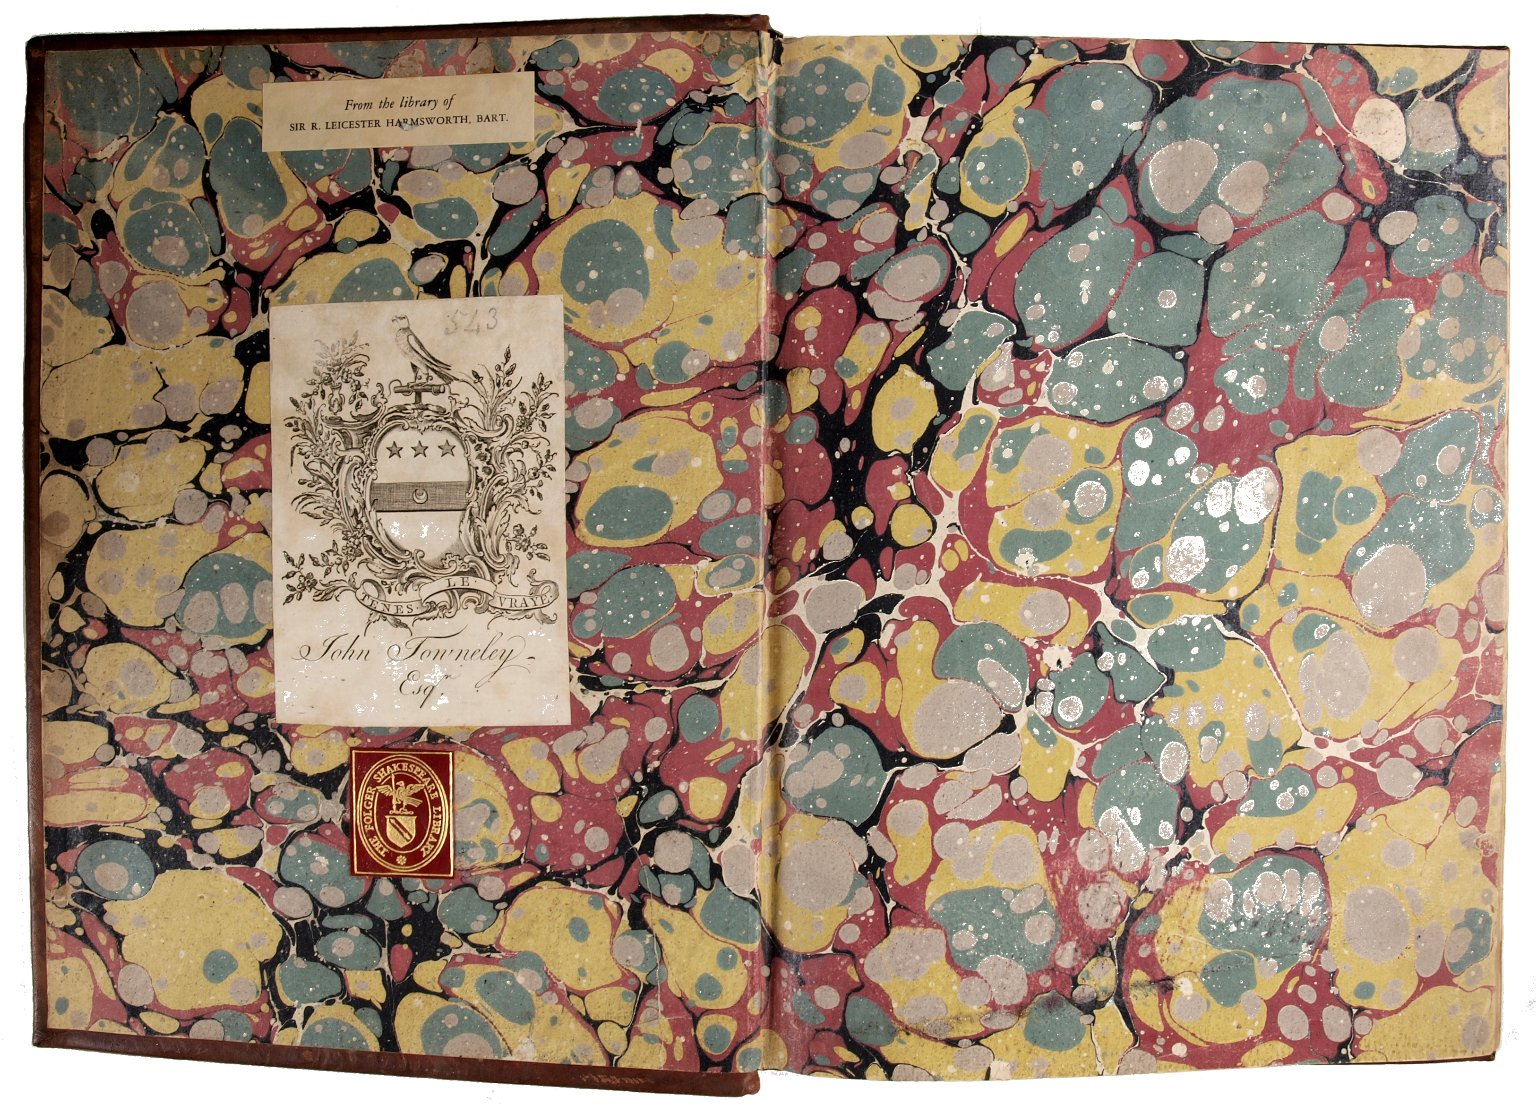 Endpapers, STC 5641.